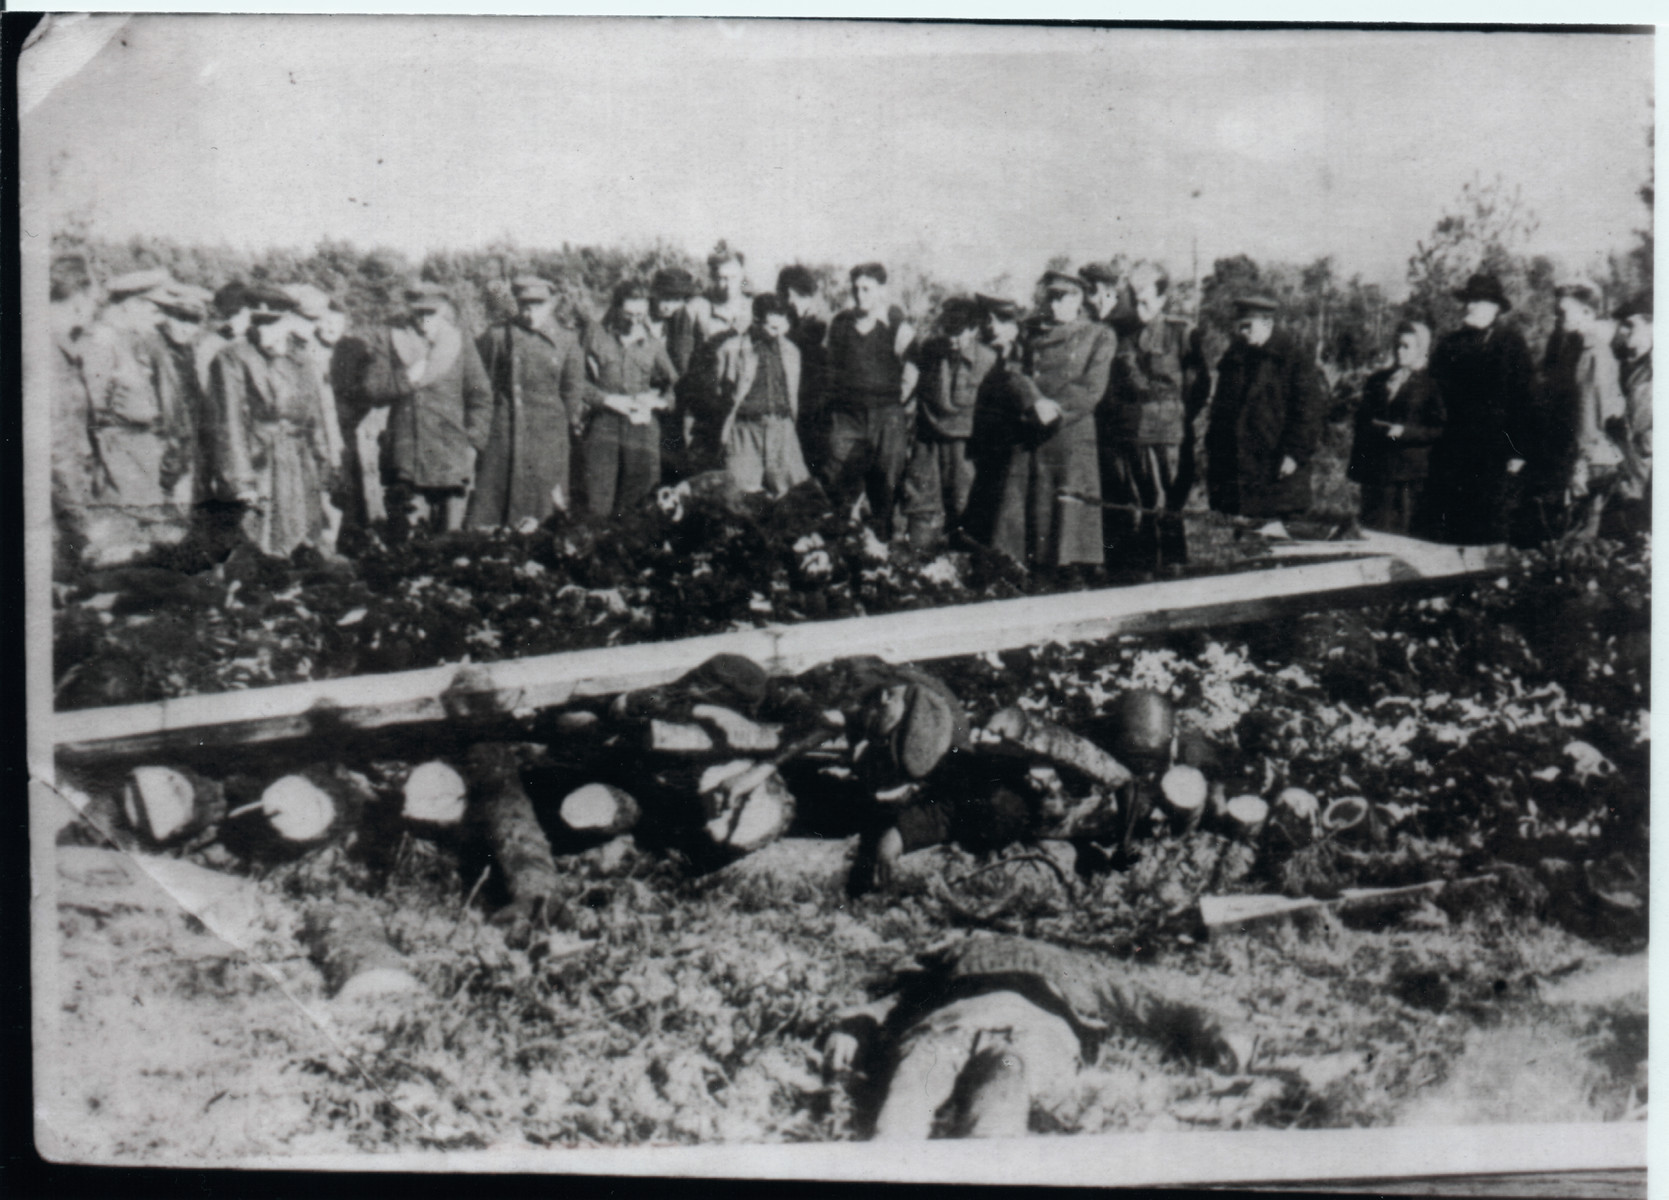 A group of survivors stares at the remains of other charred prisoners in Klooga following liberation.